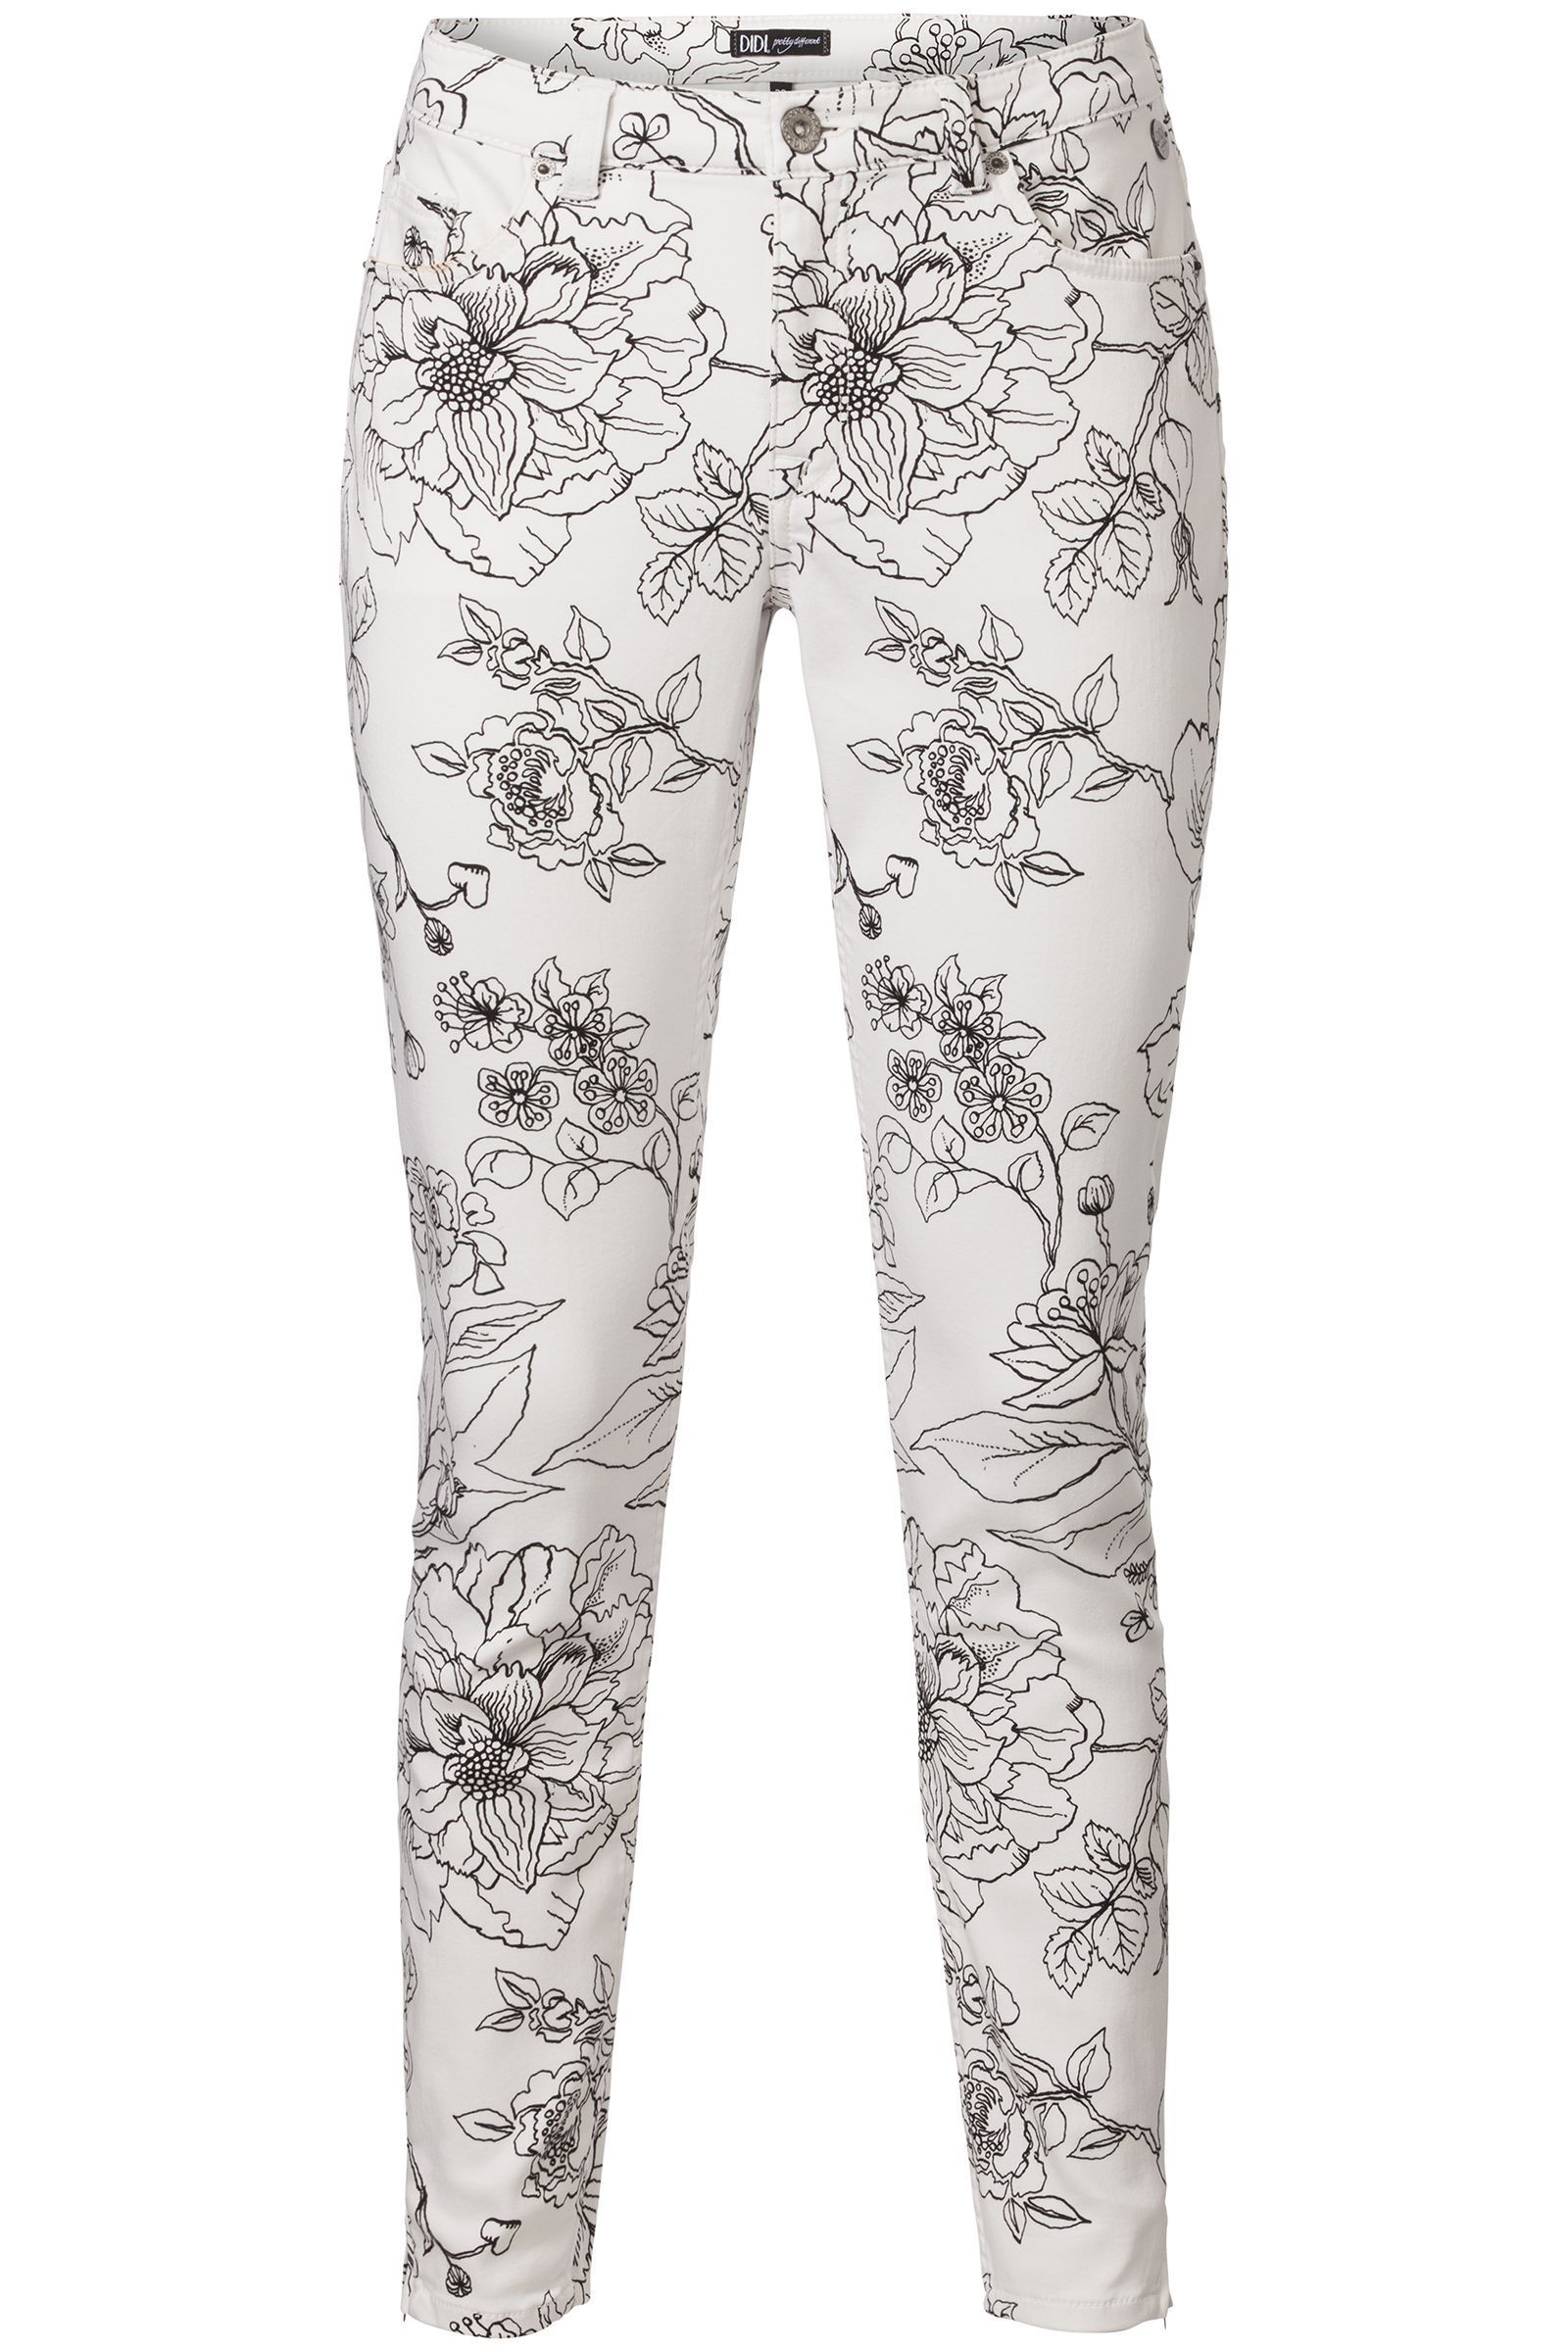 Morning Glow | Fall collection | Pants | Print | Flowers | Black | White